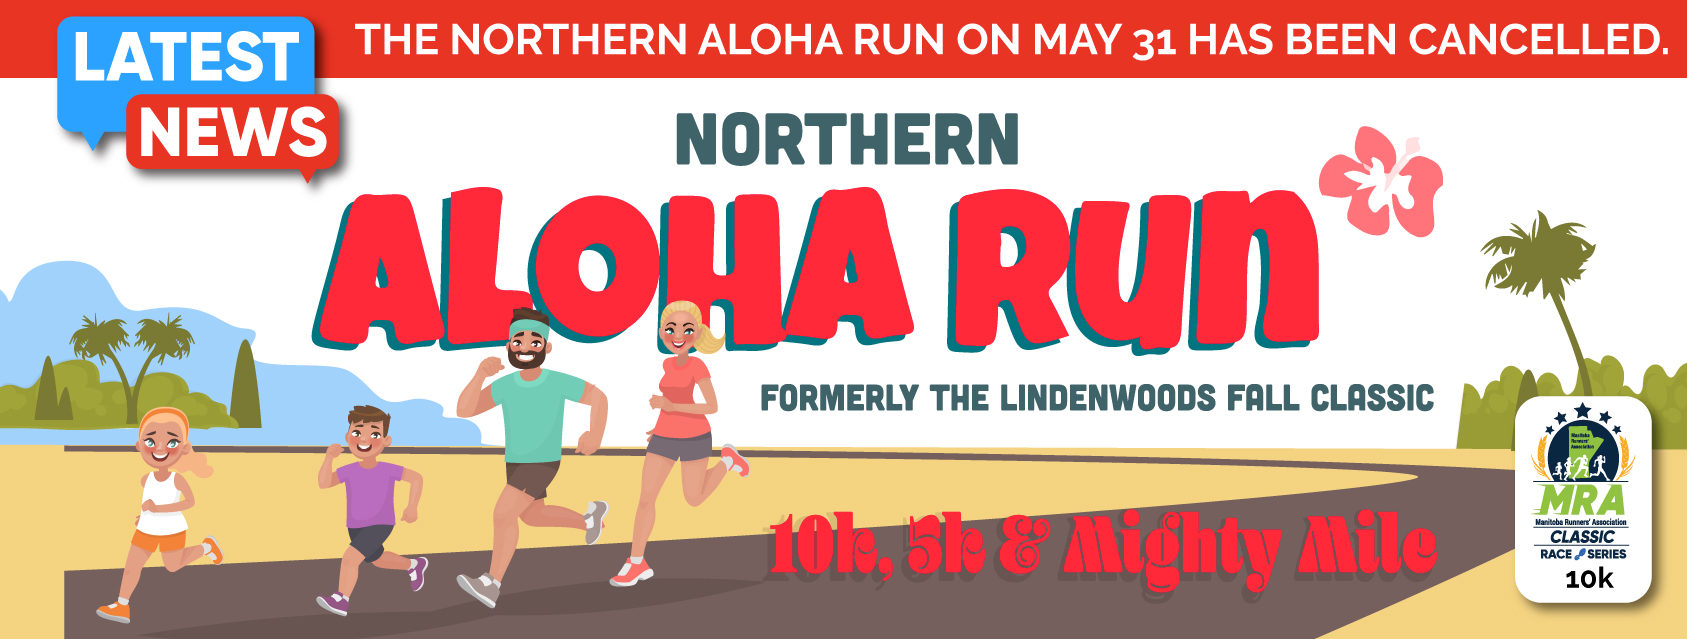 Northern Aloha Run - formerly Lindenwoods Fall Classic - **CANCELLED**